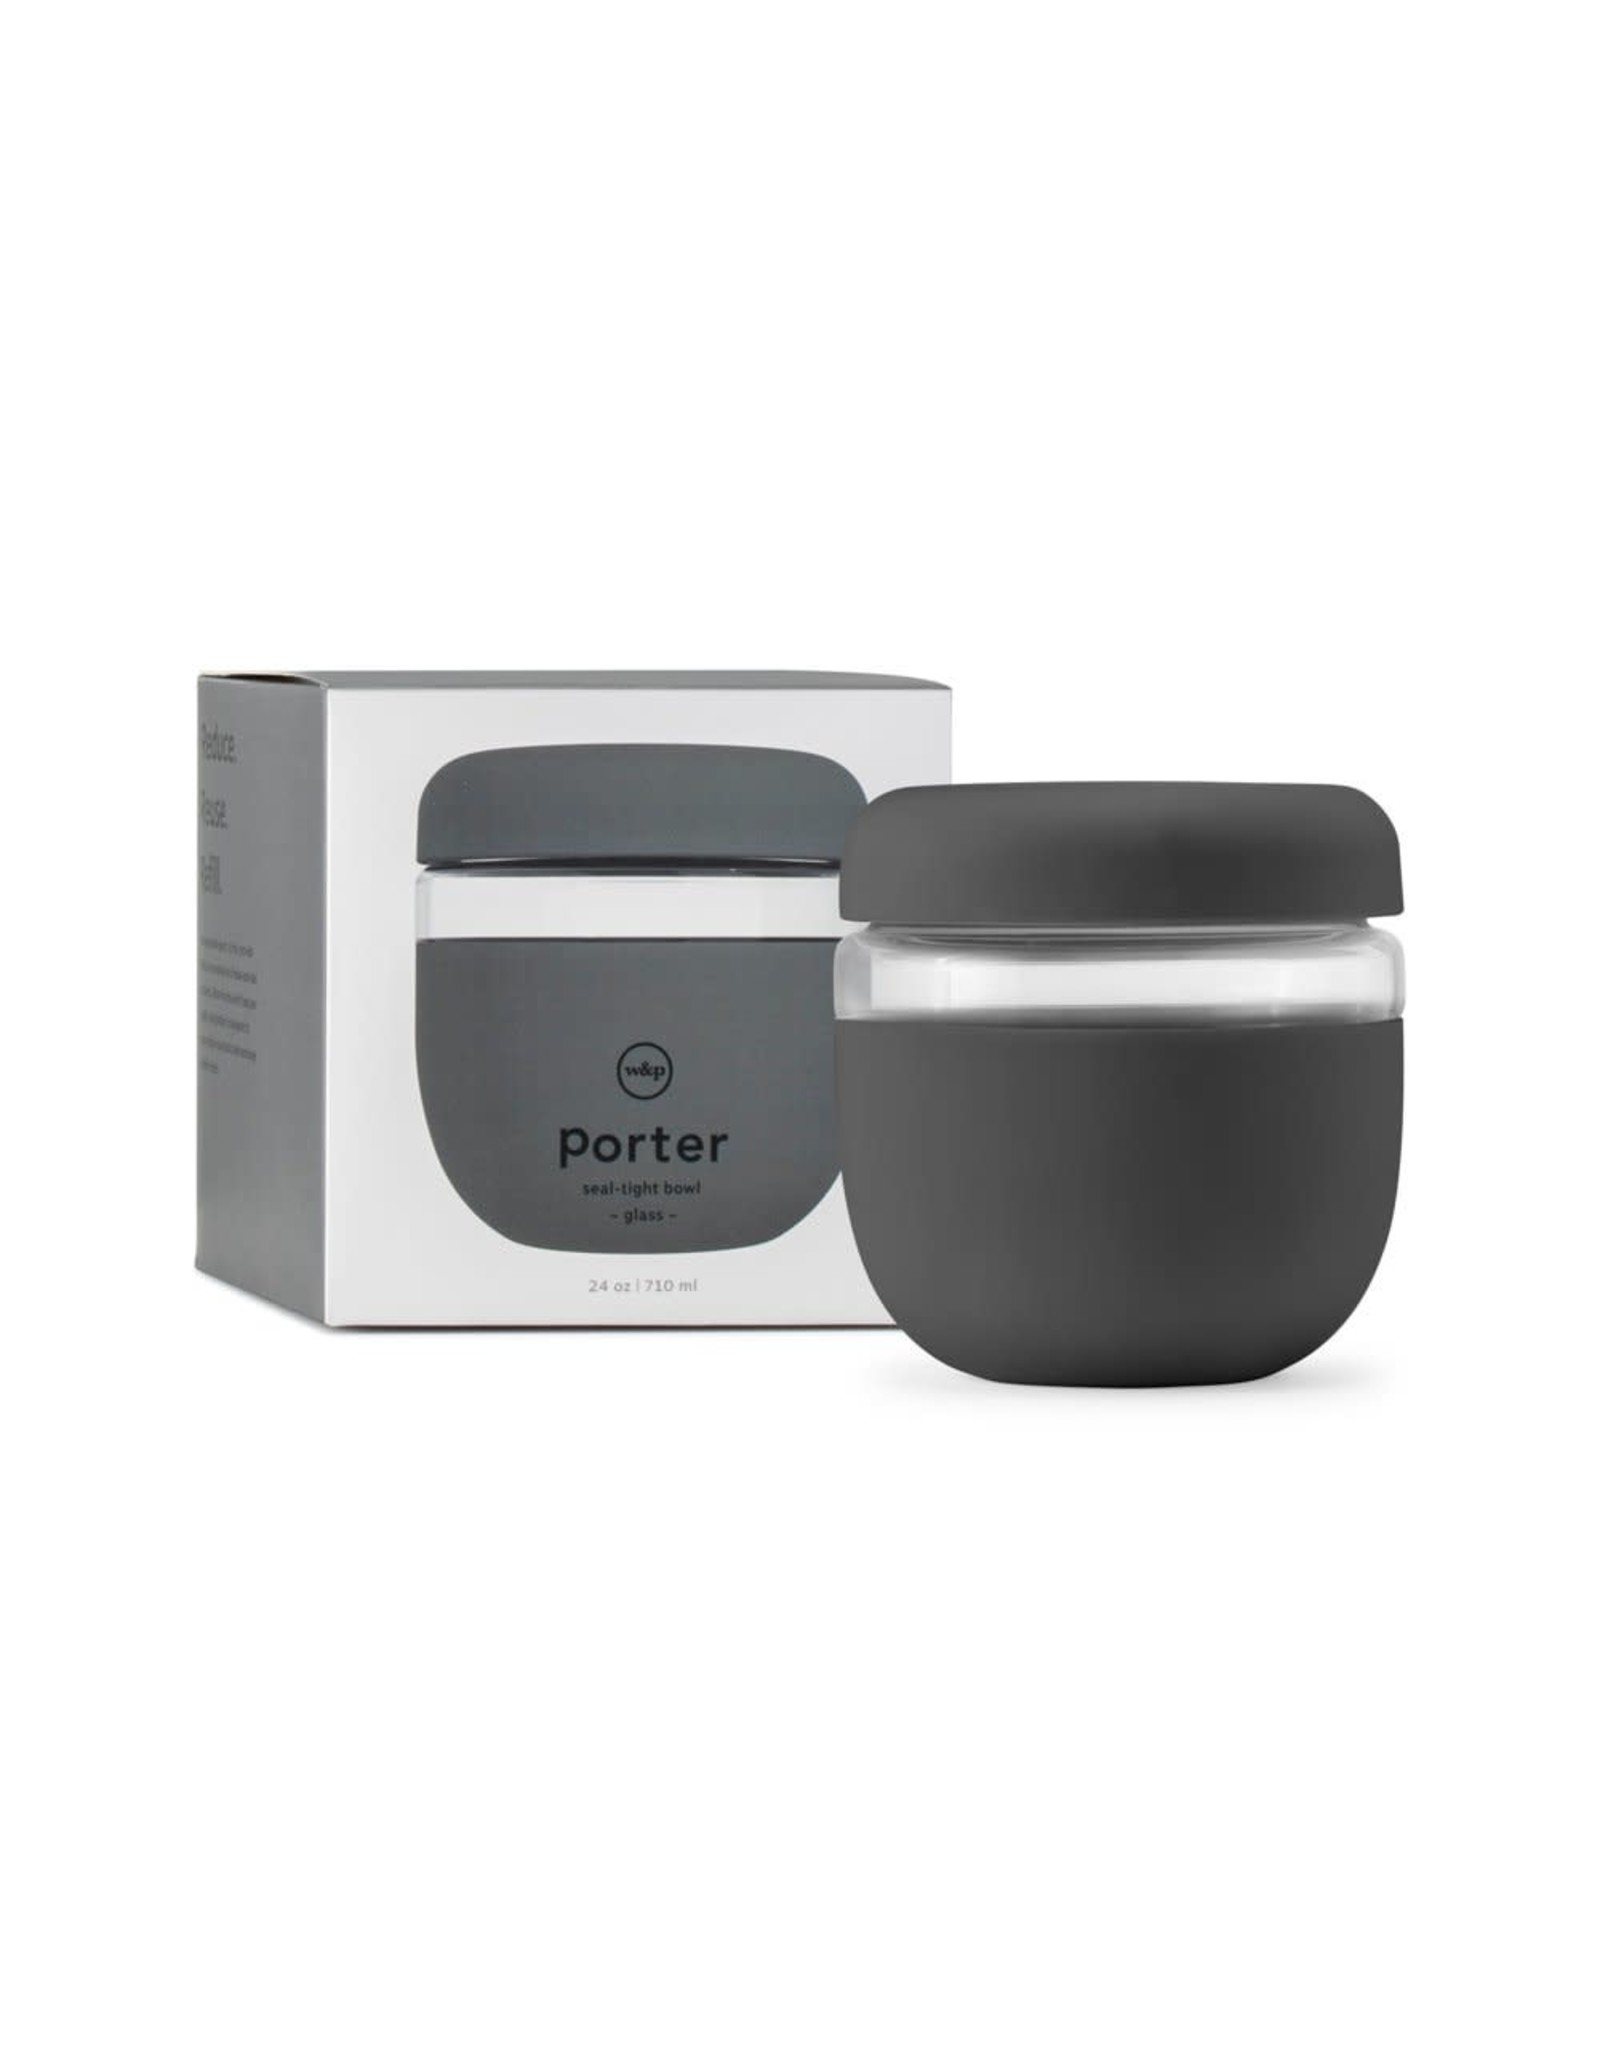 W&P Porter Seal-Tight Bowl, Charcoal